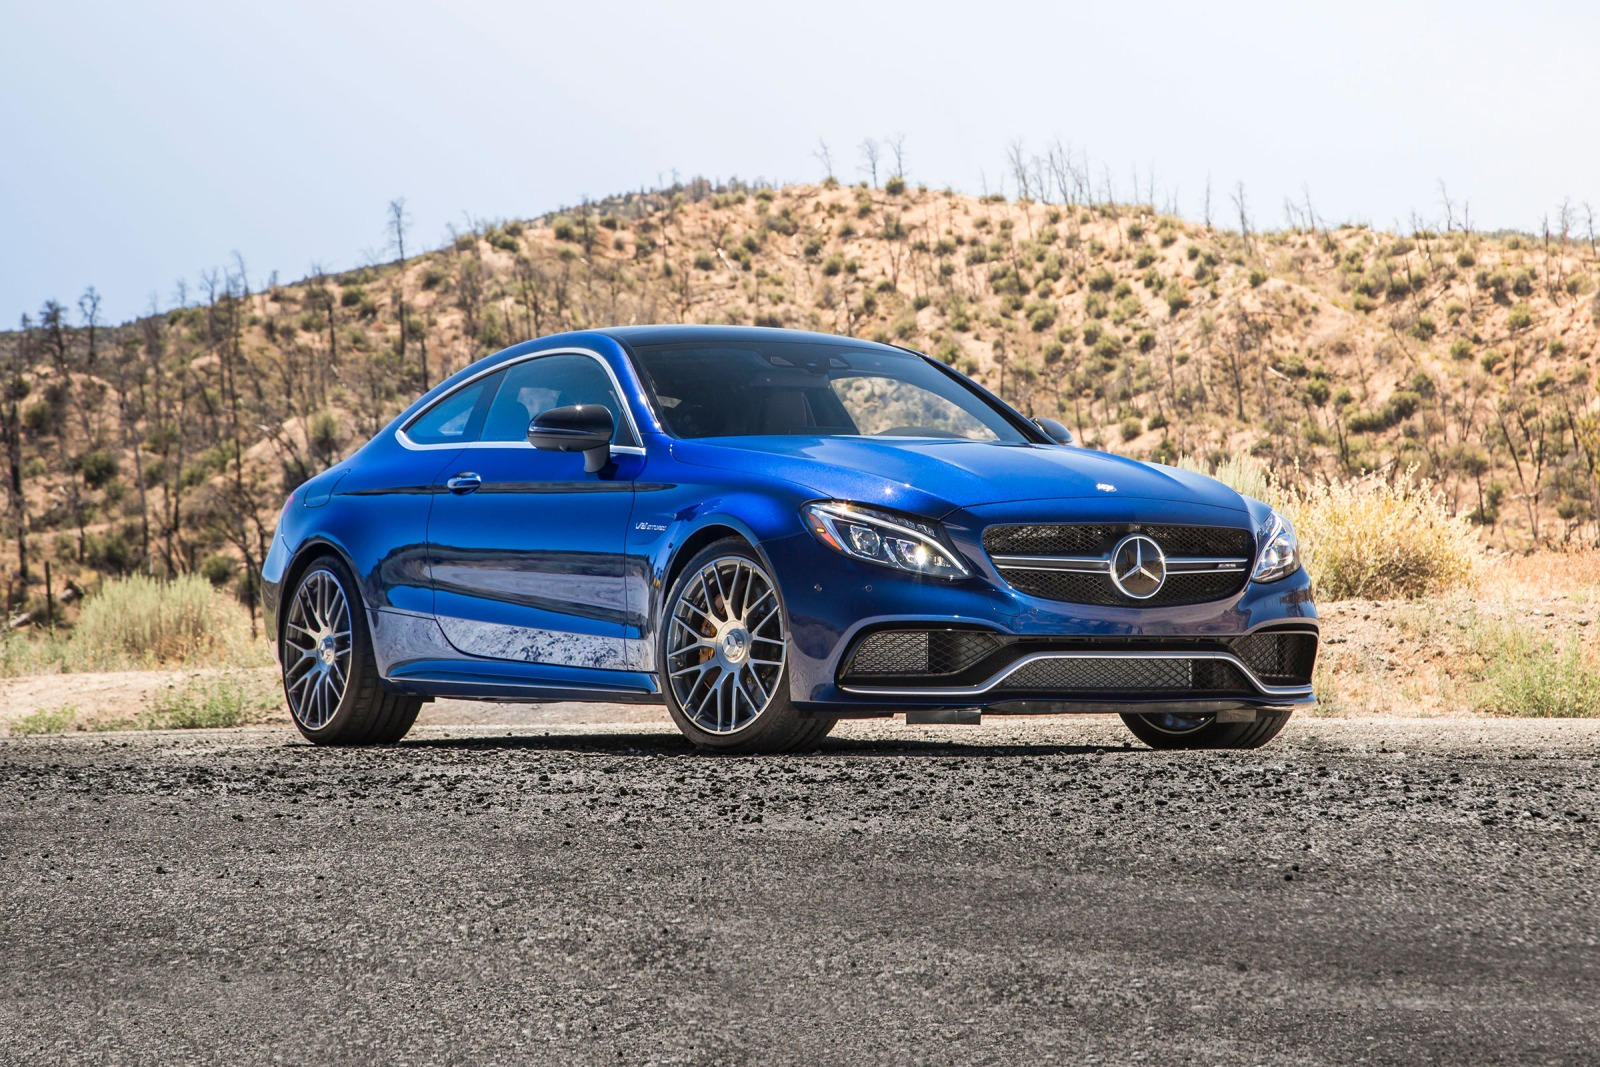 2018 mercedes amg c63 s c63 c43 coupe review trims for Mercedes benz c63 amg coupe price